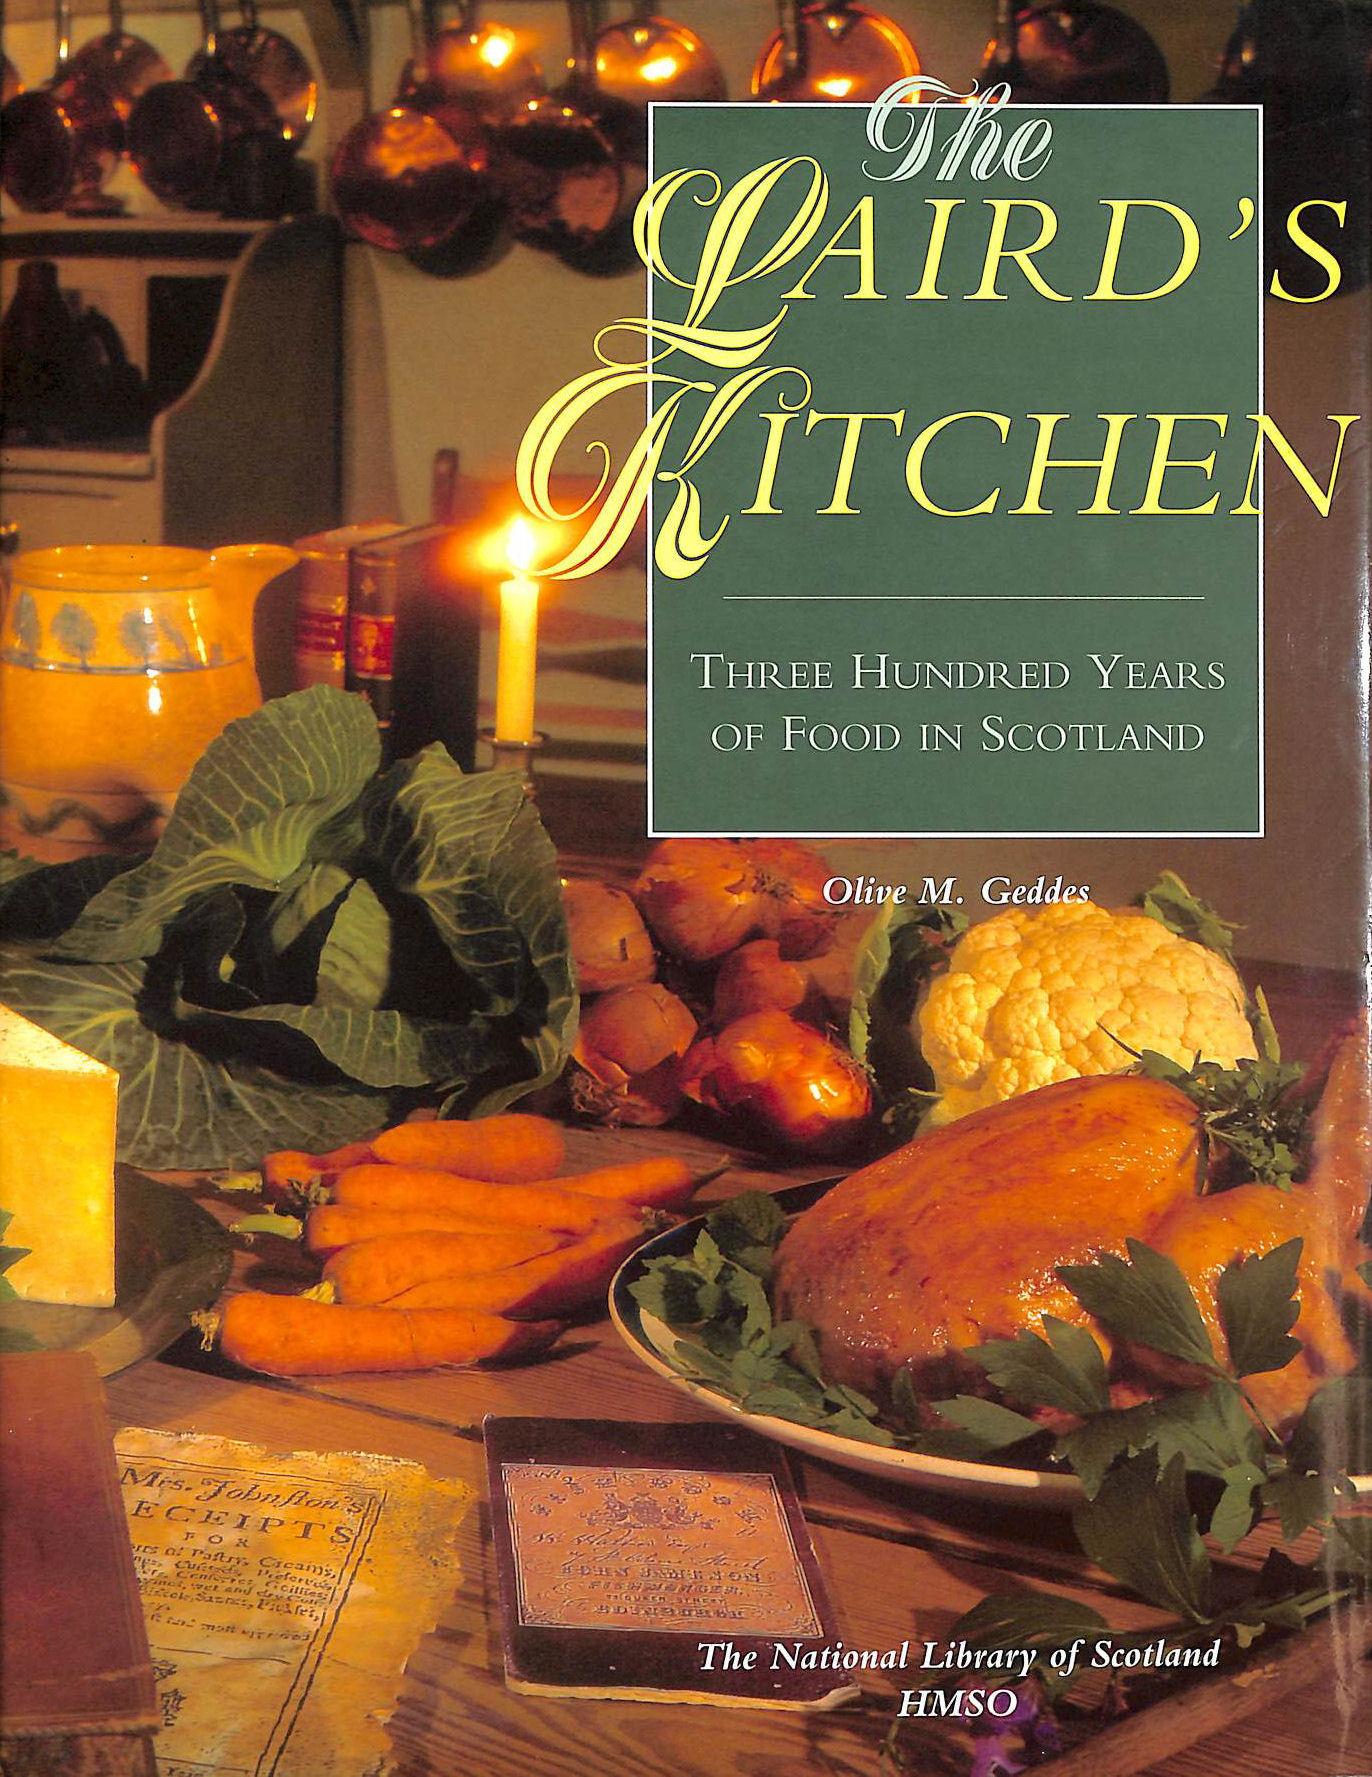 Image for The Laird's Kitchen: Three Hundred Years of Food in Scotland